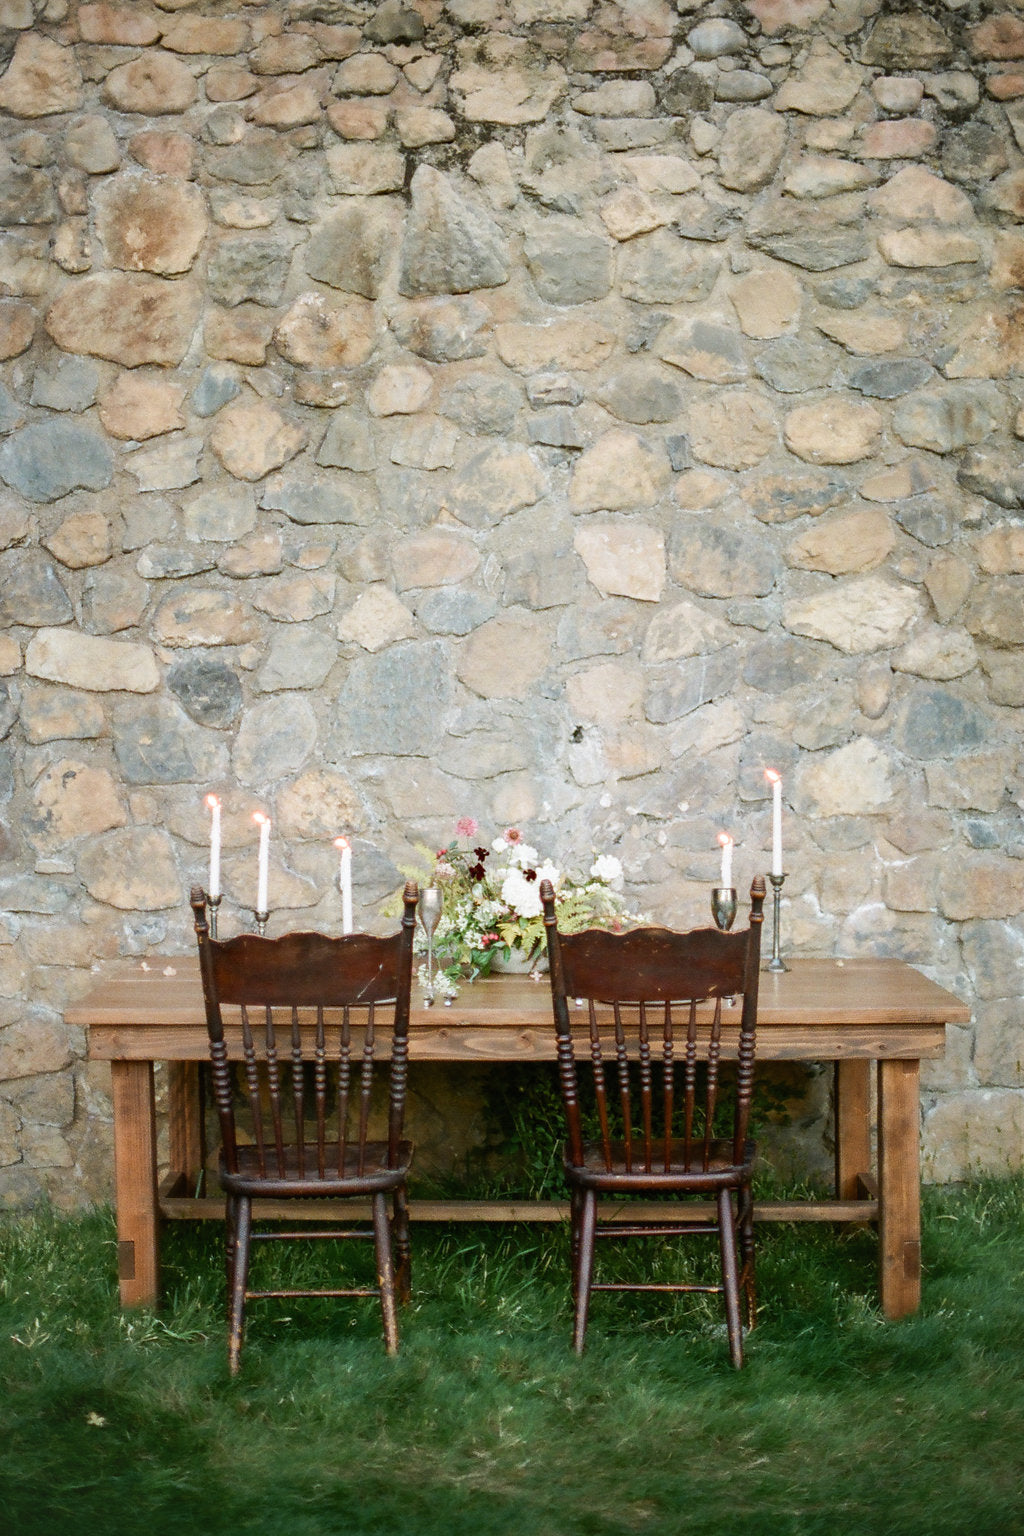 Antique chairs at beautiful table